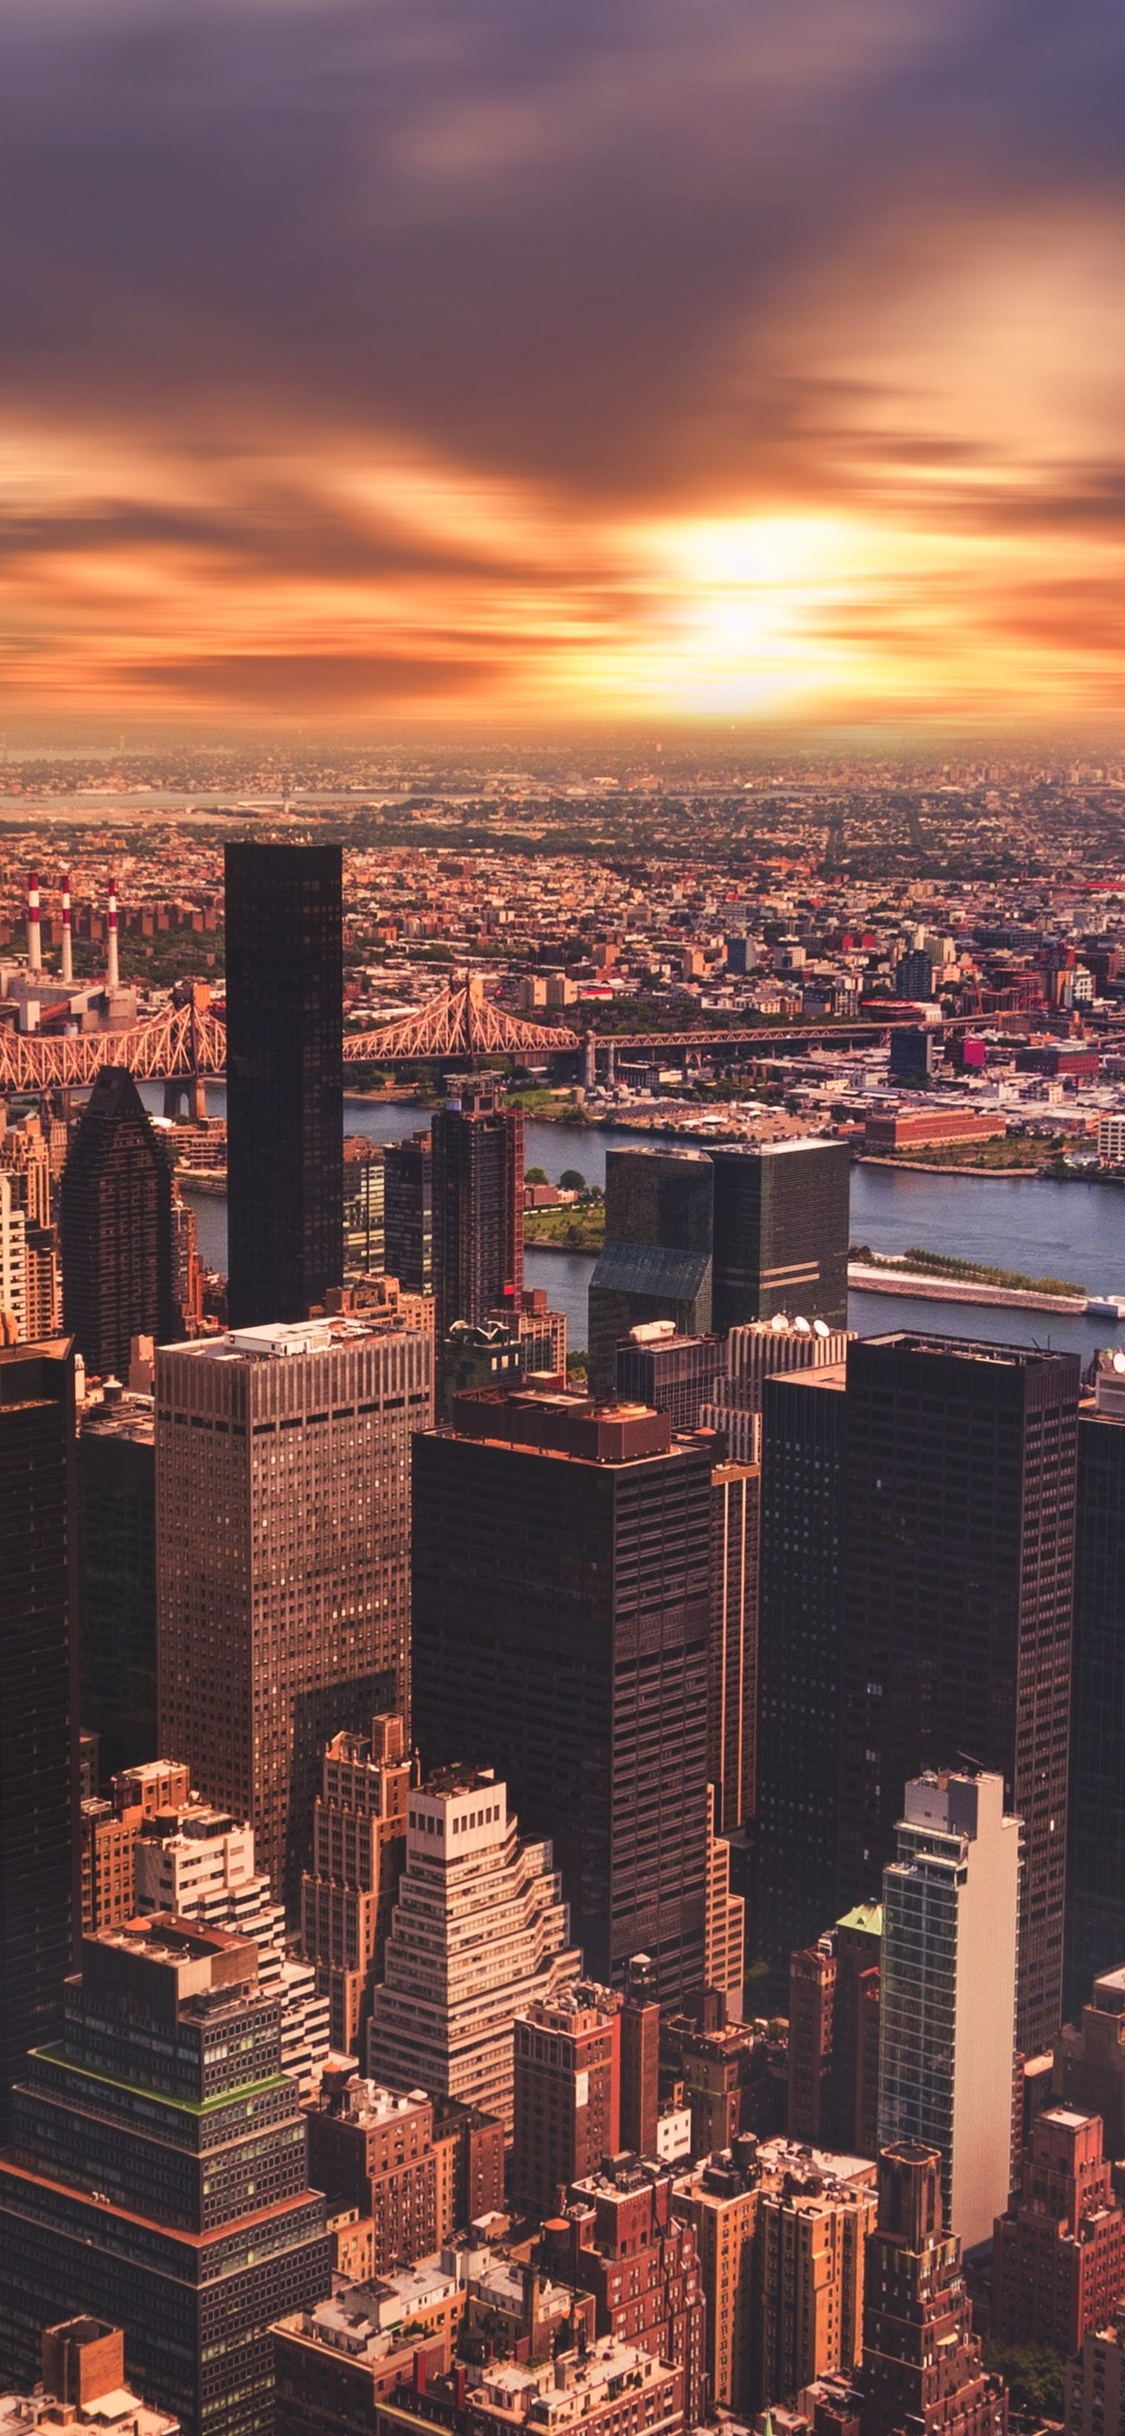 1125x2436 New York City Cityscape Skyscraper Iphone Xs Iphone 10 Iphone X Hd 4k Wallpapers Images Backgrounds Photos And Pictures